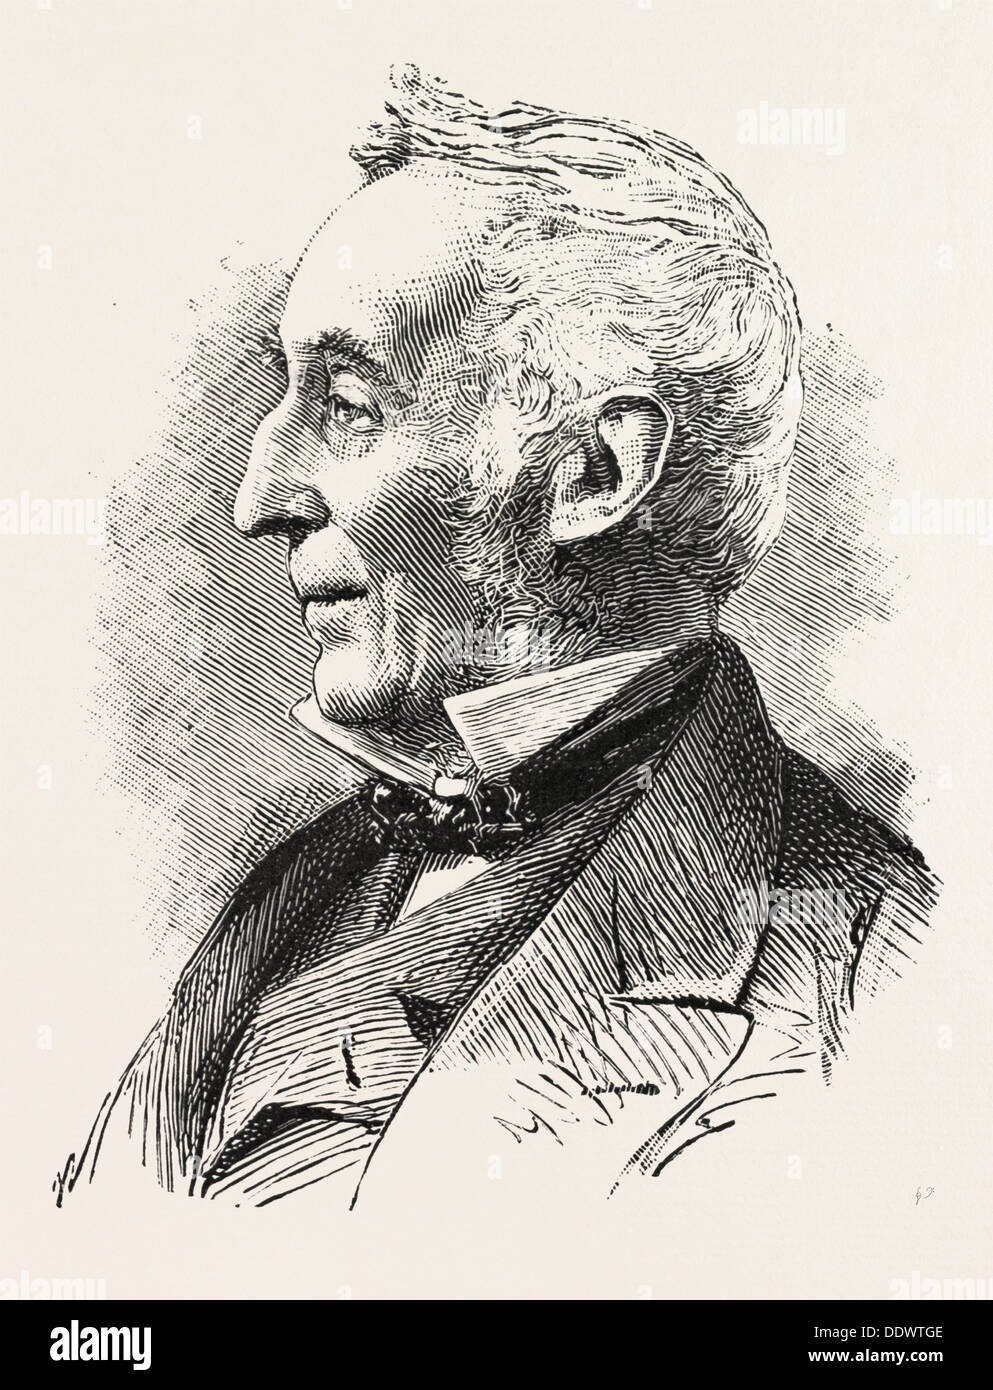 HIS GRACE THE DUKE OF WELLINGTON, K.G. Born Feb. 3, 1807 Died August 13, 1884, engraving 1884, UK, britain, british, europe - Stock Image